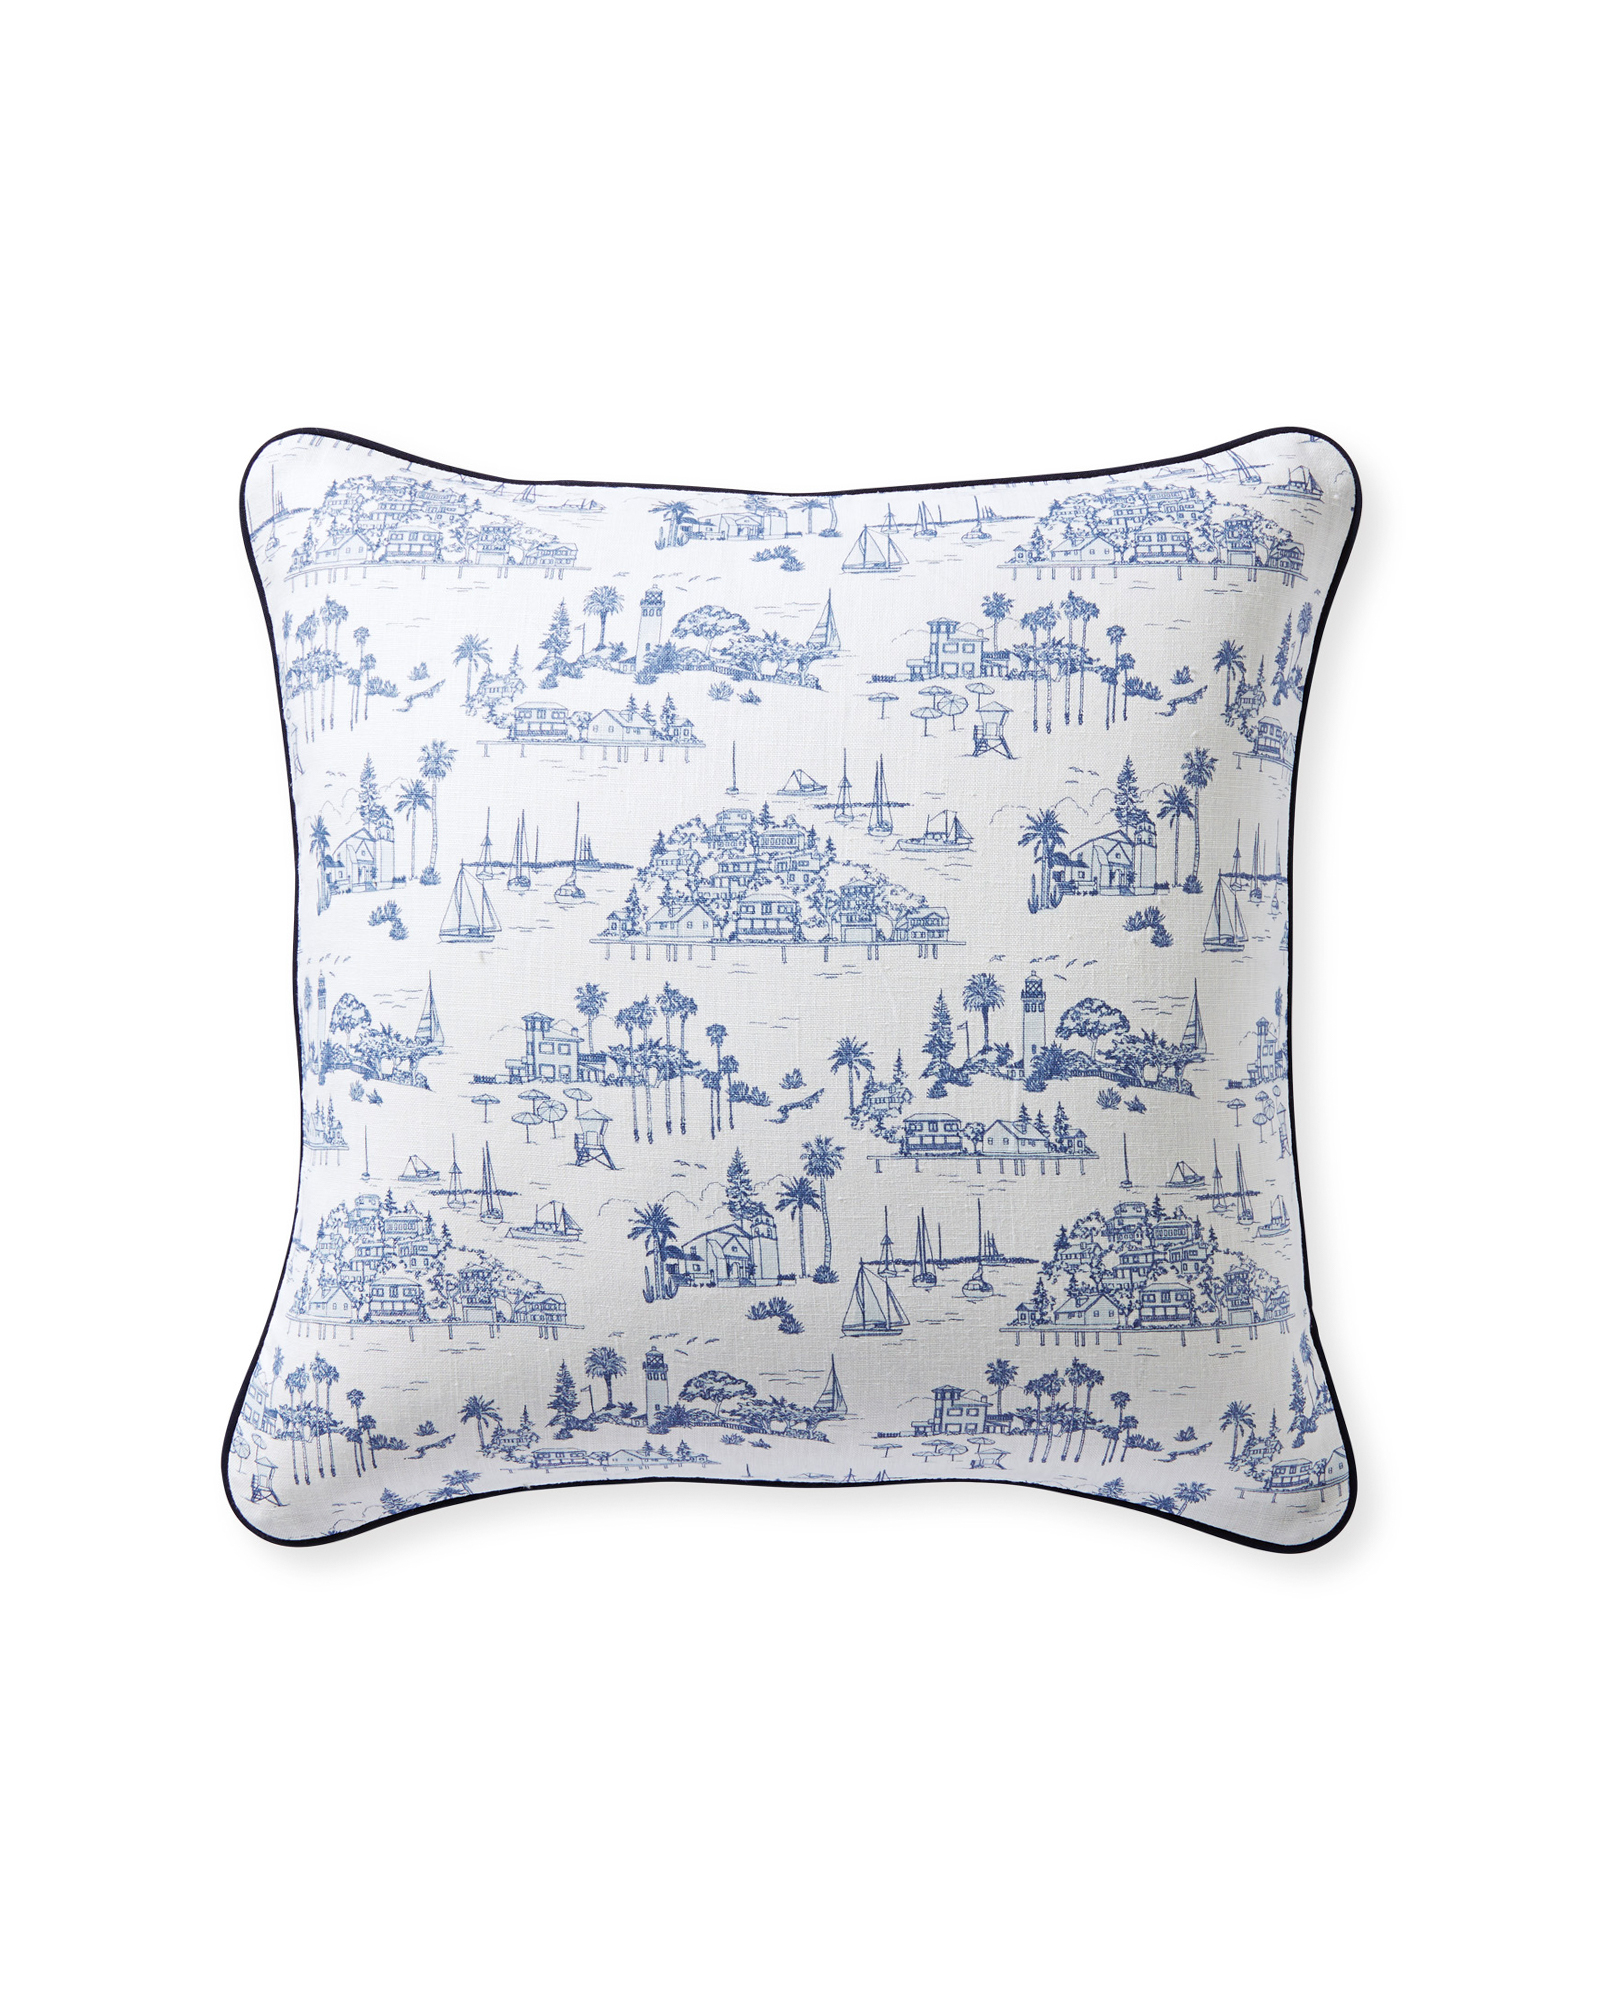 Seahaven Pillow Cover, Serena & Lily